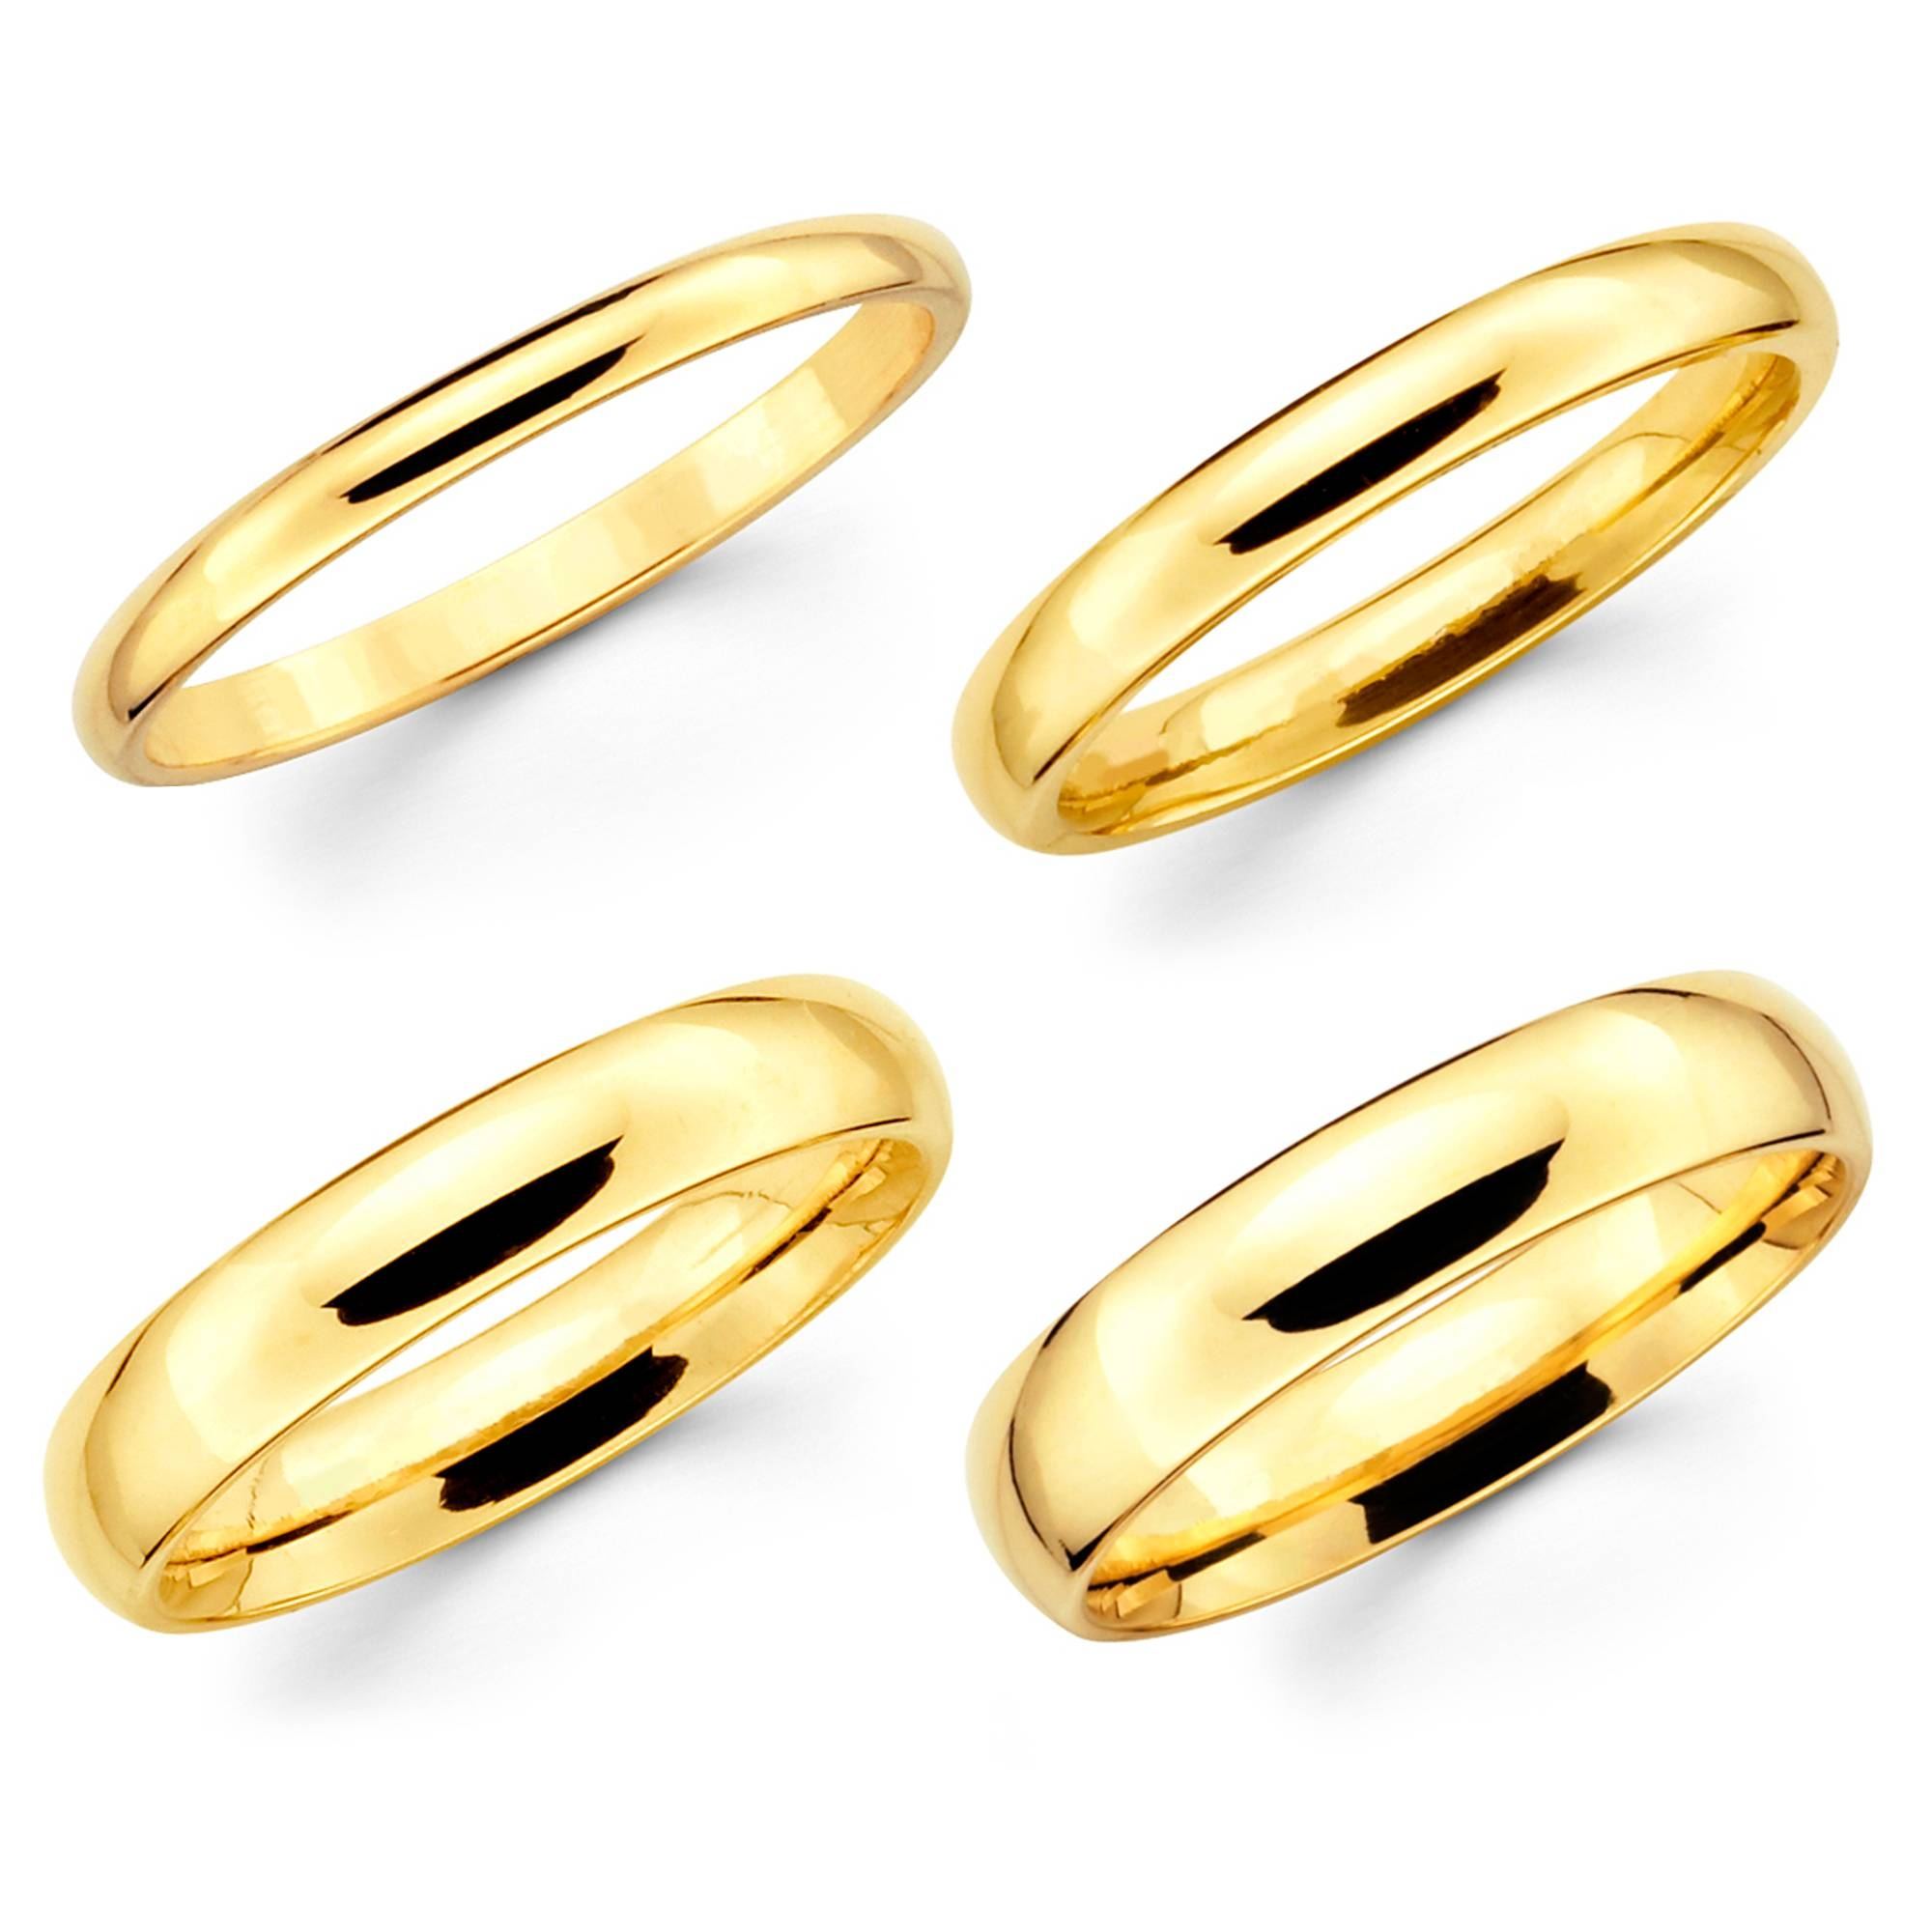 14 Karat White Gold Wedding Rings Tags : Pure Gold Wedding Rings Regarding 14 Carat Gold Wedding Bands (Gallery 7 of 15)